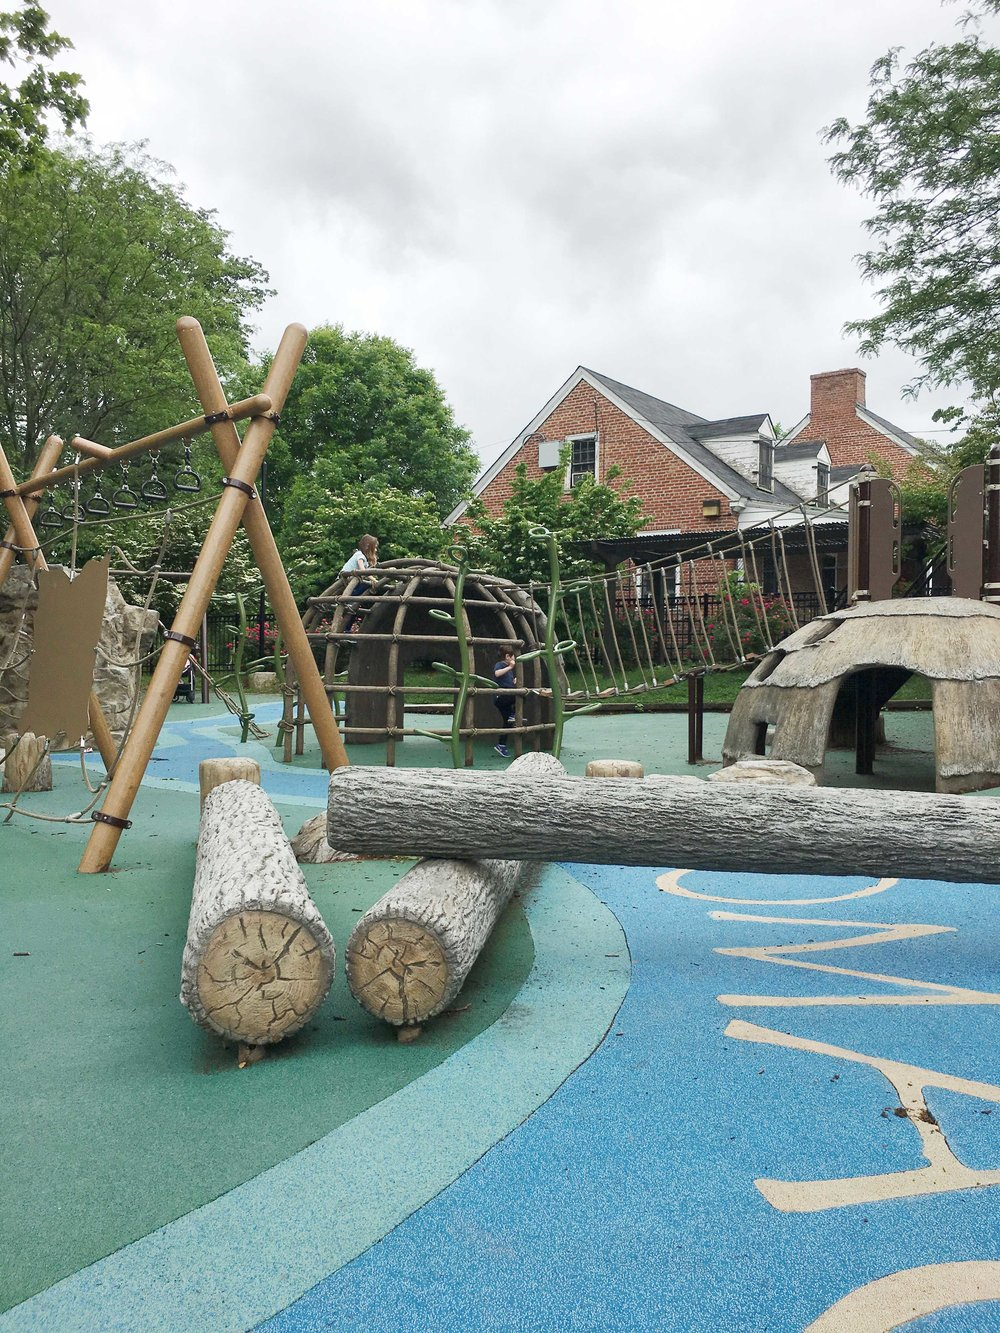 Palisades Playground in Washingston D.C.